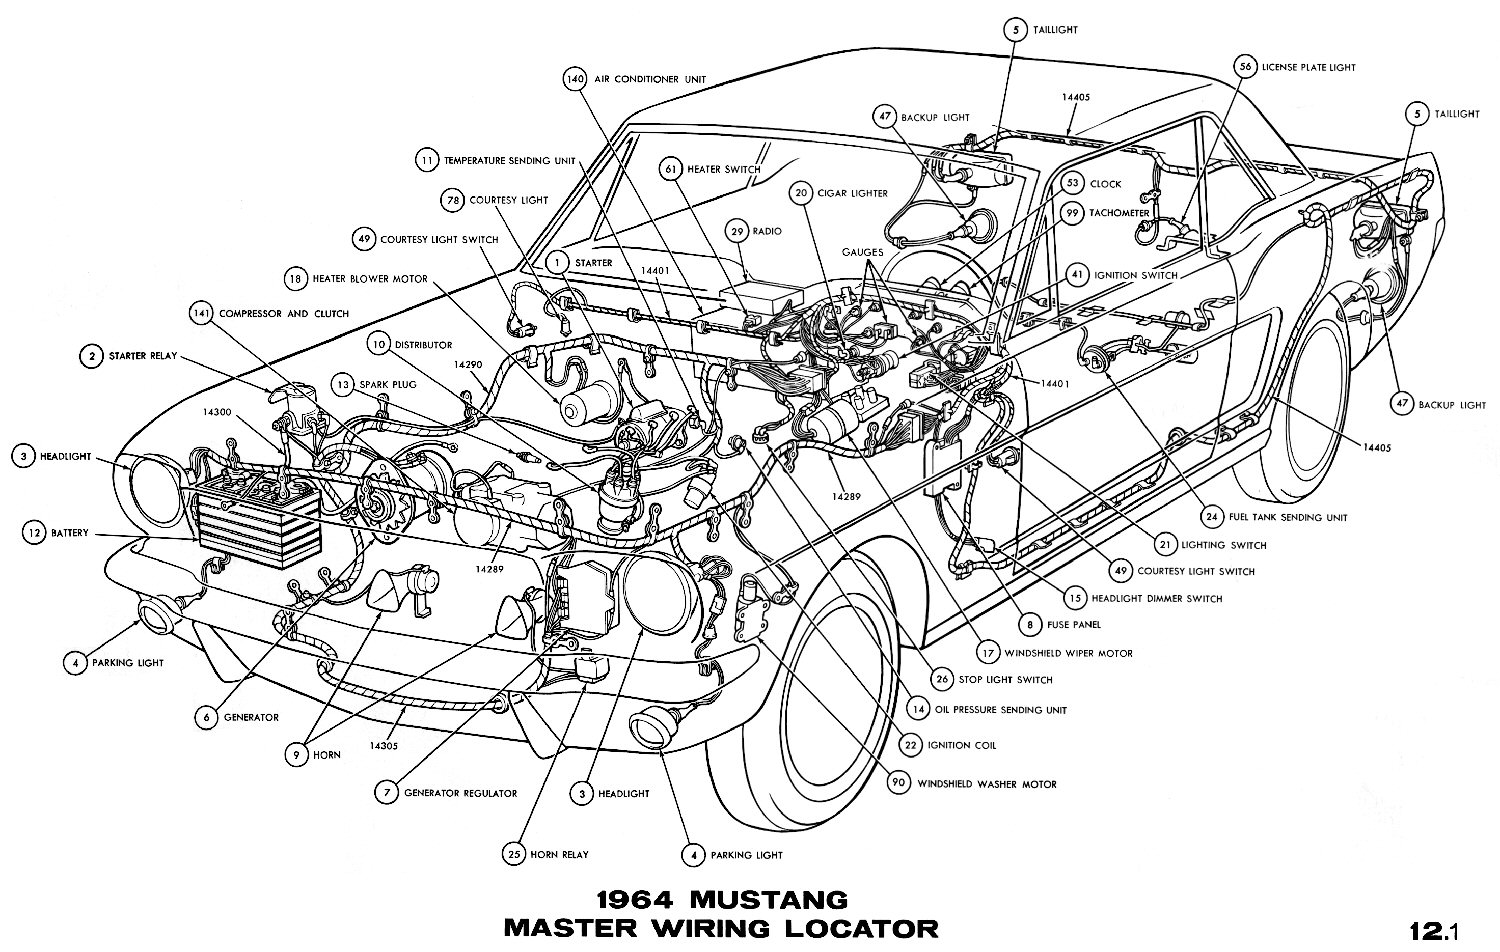 1967 mustang engine diagram. 1967. free printable wiring ... 65 mustang wire diagram starting